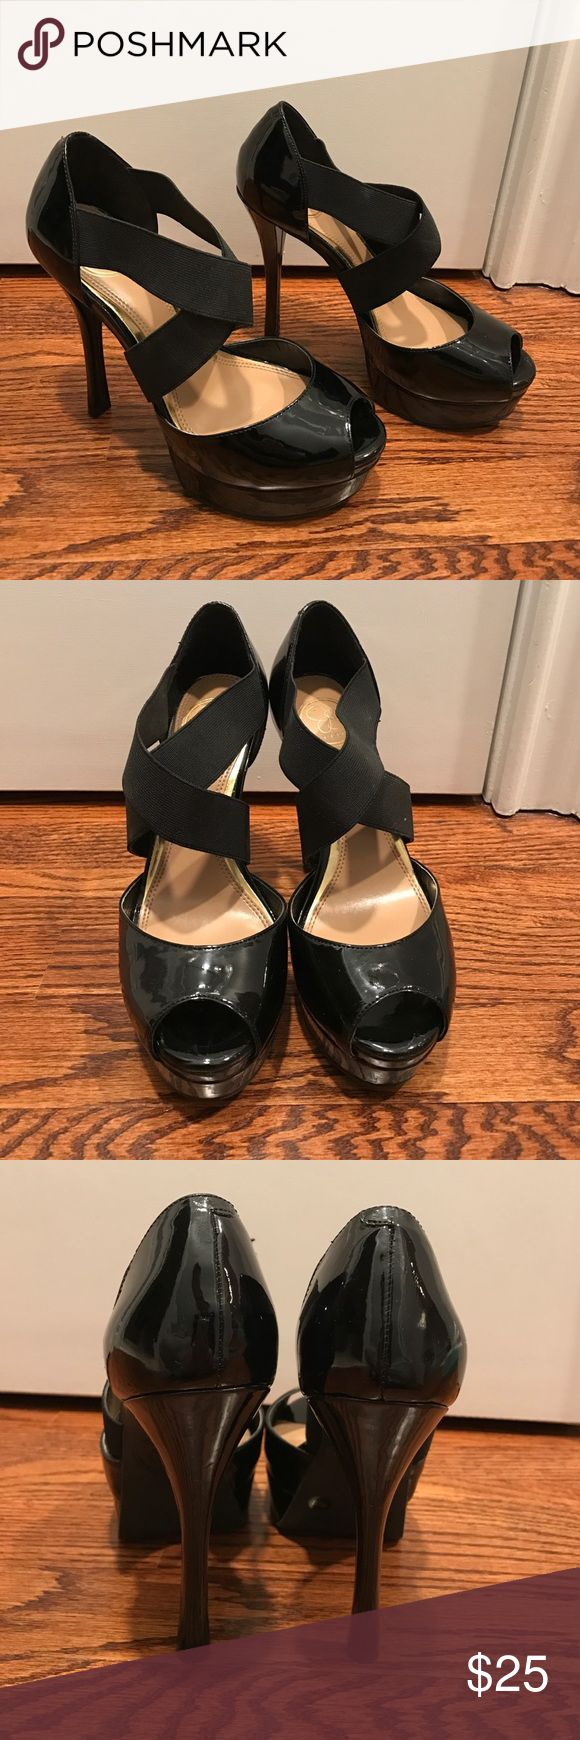 JS by Jessica black crossed shoe JS by Jessica sold at DSW. size 7 color black style rach USA women's size 7. Comes in box. Shoes Heels